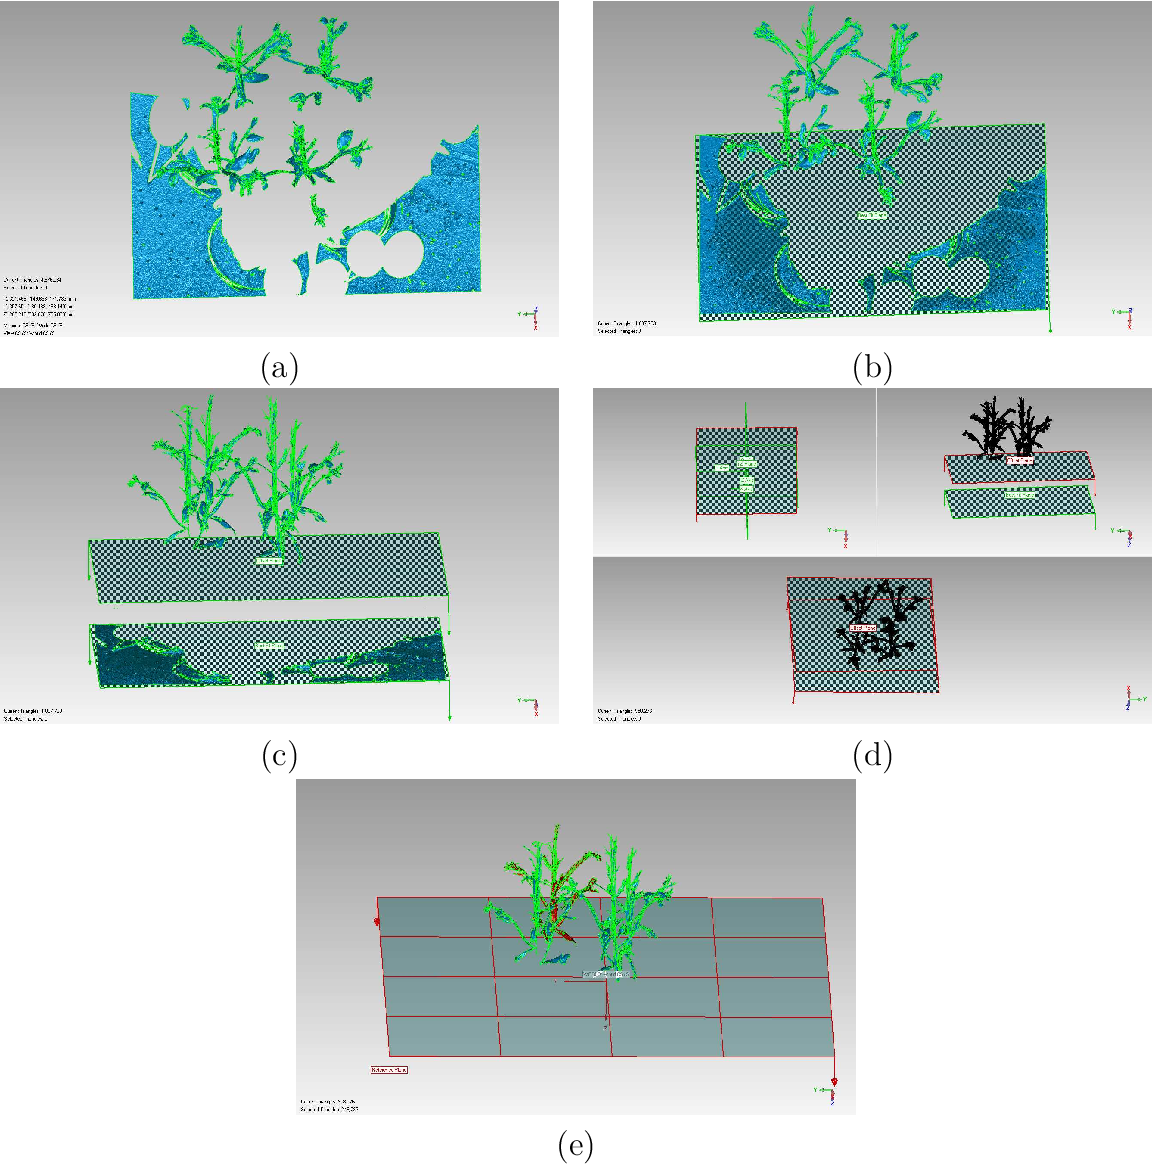 Automation of the Registration of Range Plant Images Using Geomagic